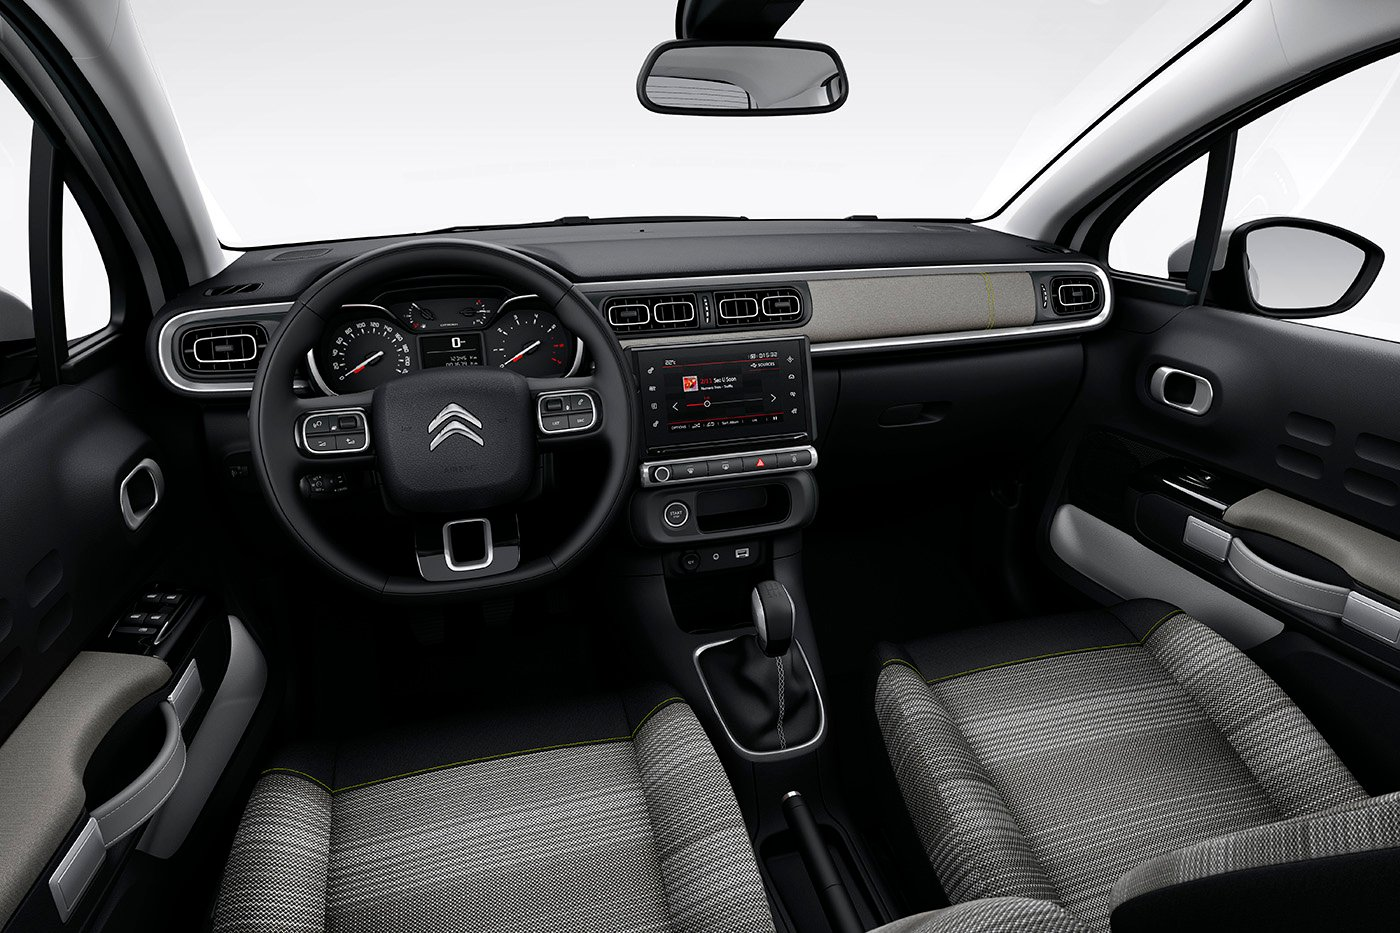 2018 citroen c3 confirmed for october launch c4 picasso axed update photos 1 of 4. Black Bedroom Furniture Sets. Home Design Ideas